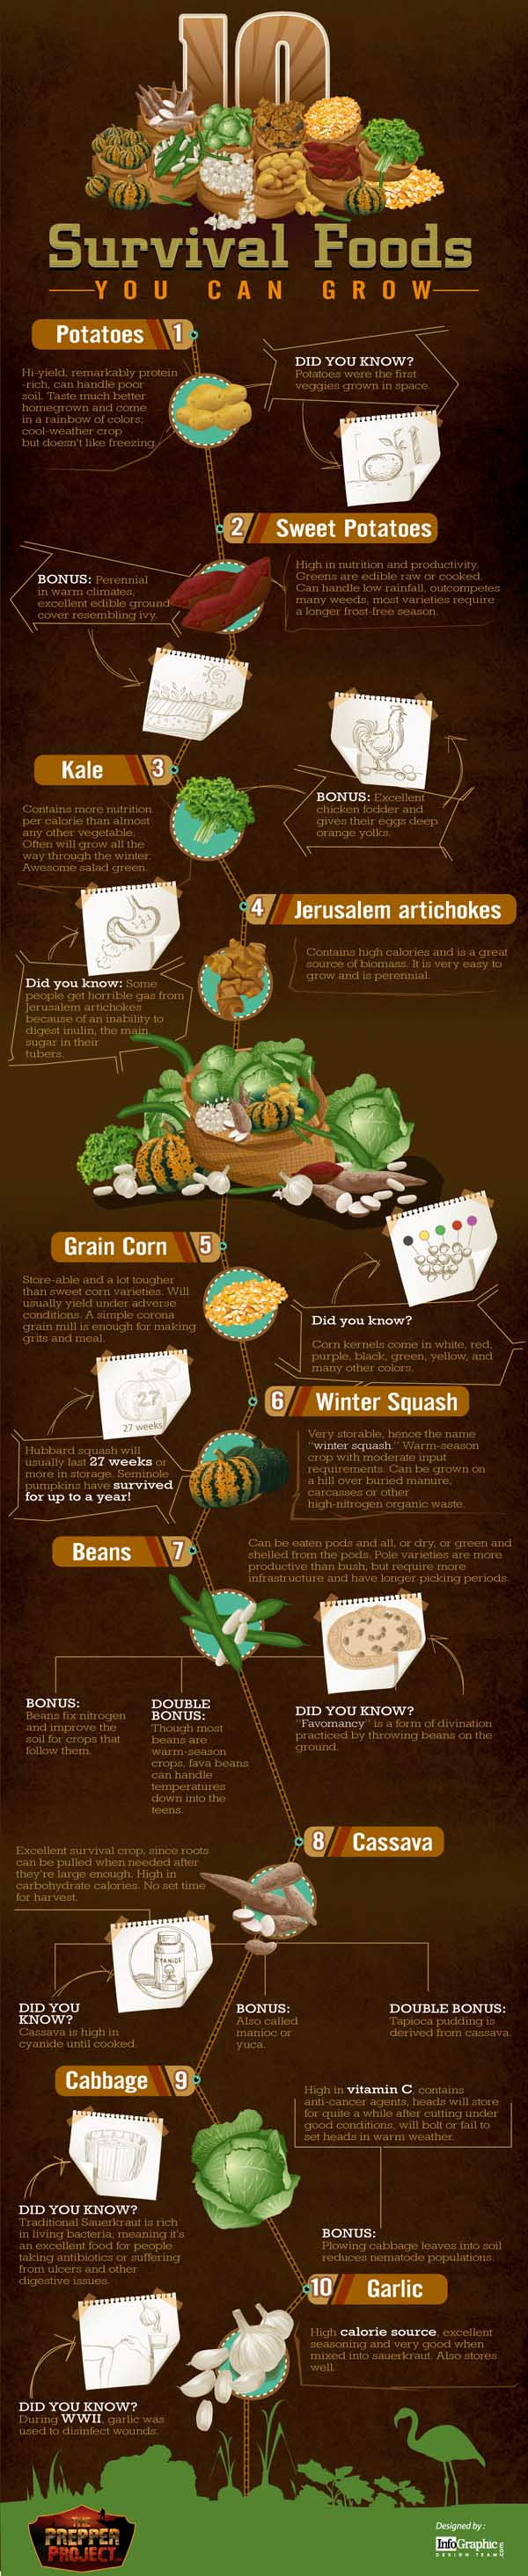 10 Survival Foods You Can Grow Infographic 10 Best Survival Foods